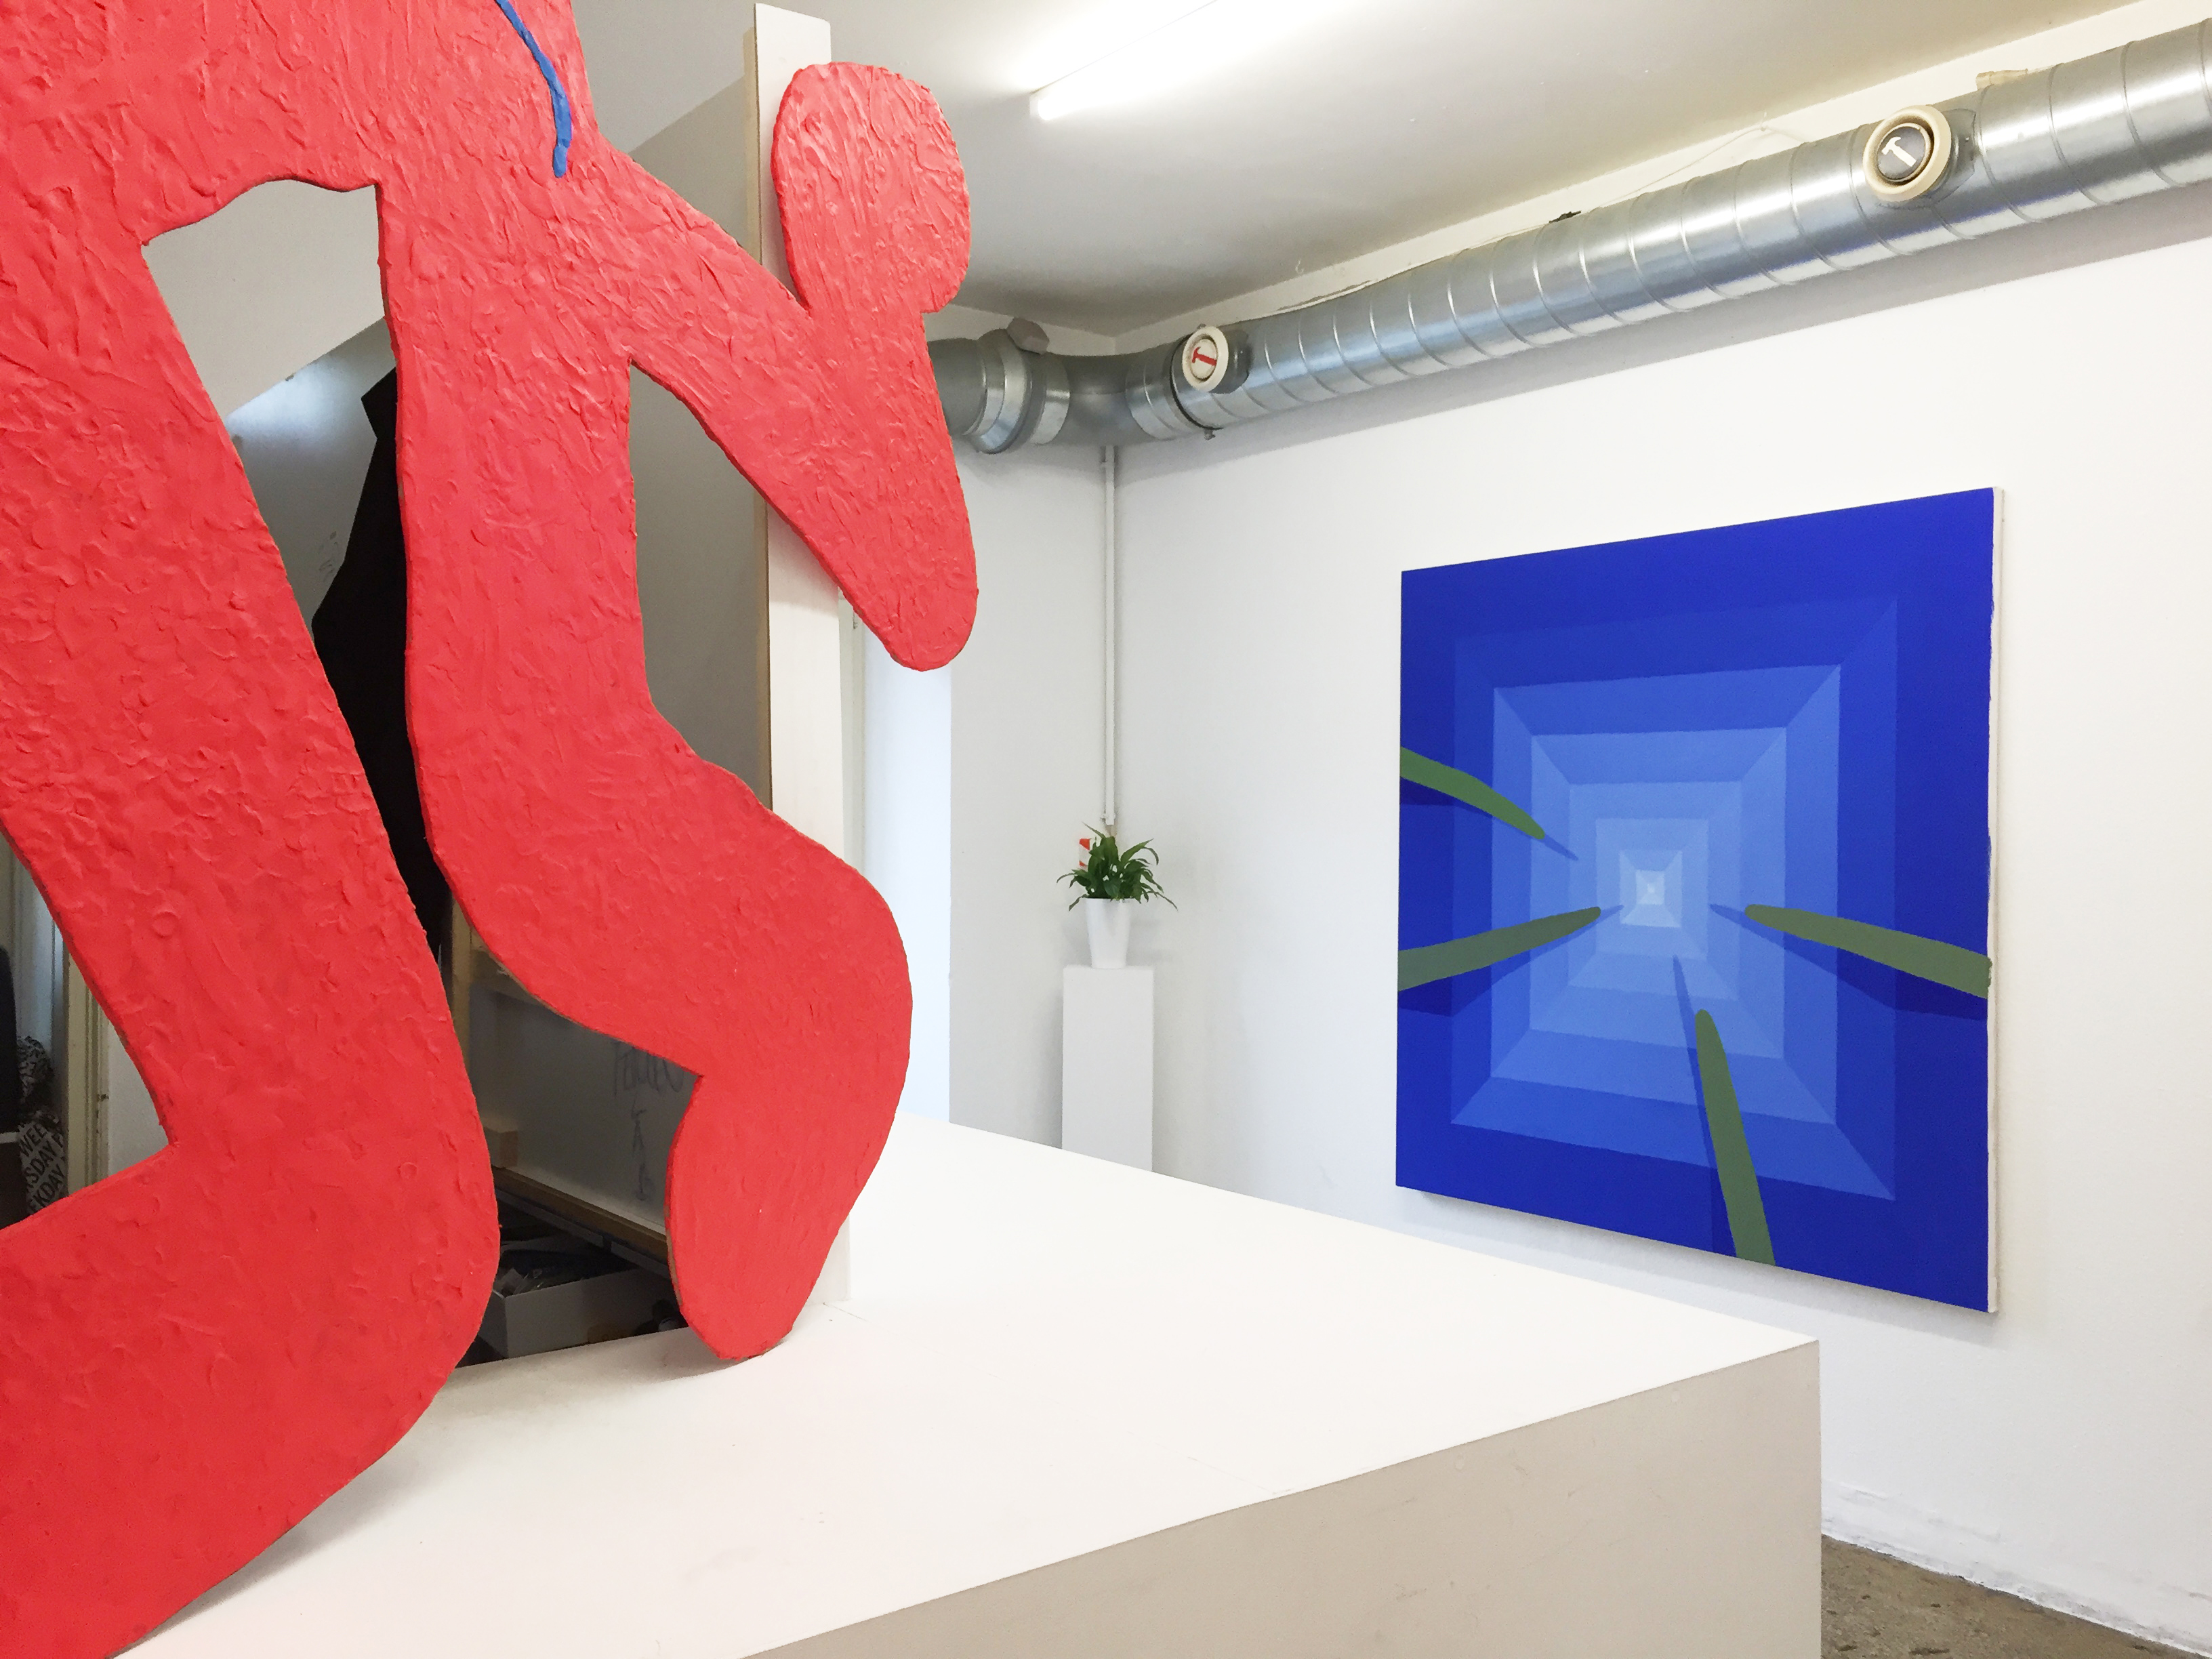 Installation view of Creeper at Deli Projects in Basel, Switzerland, 2016